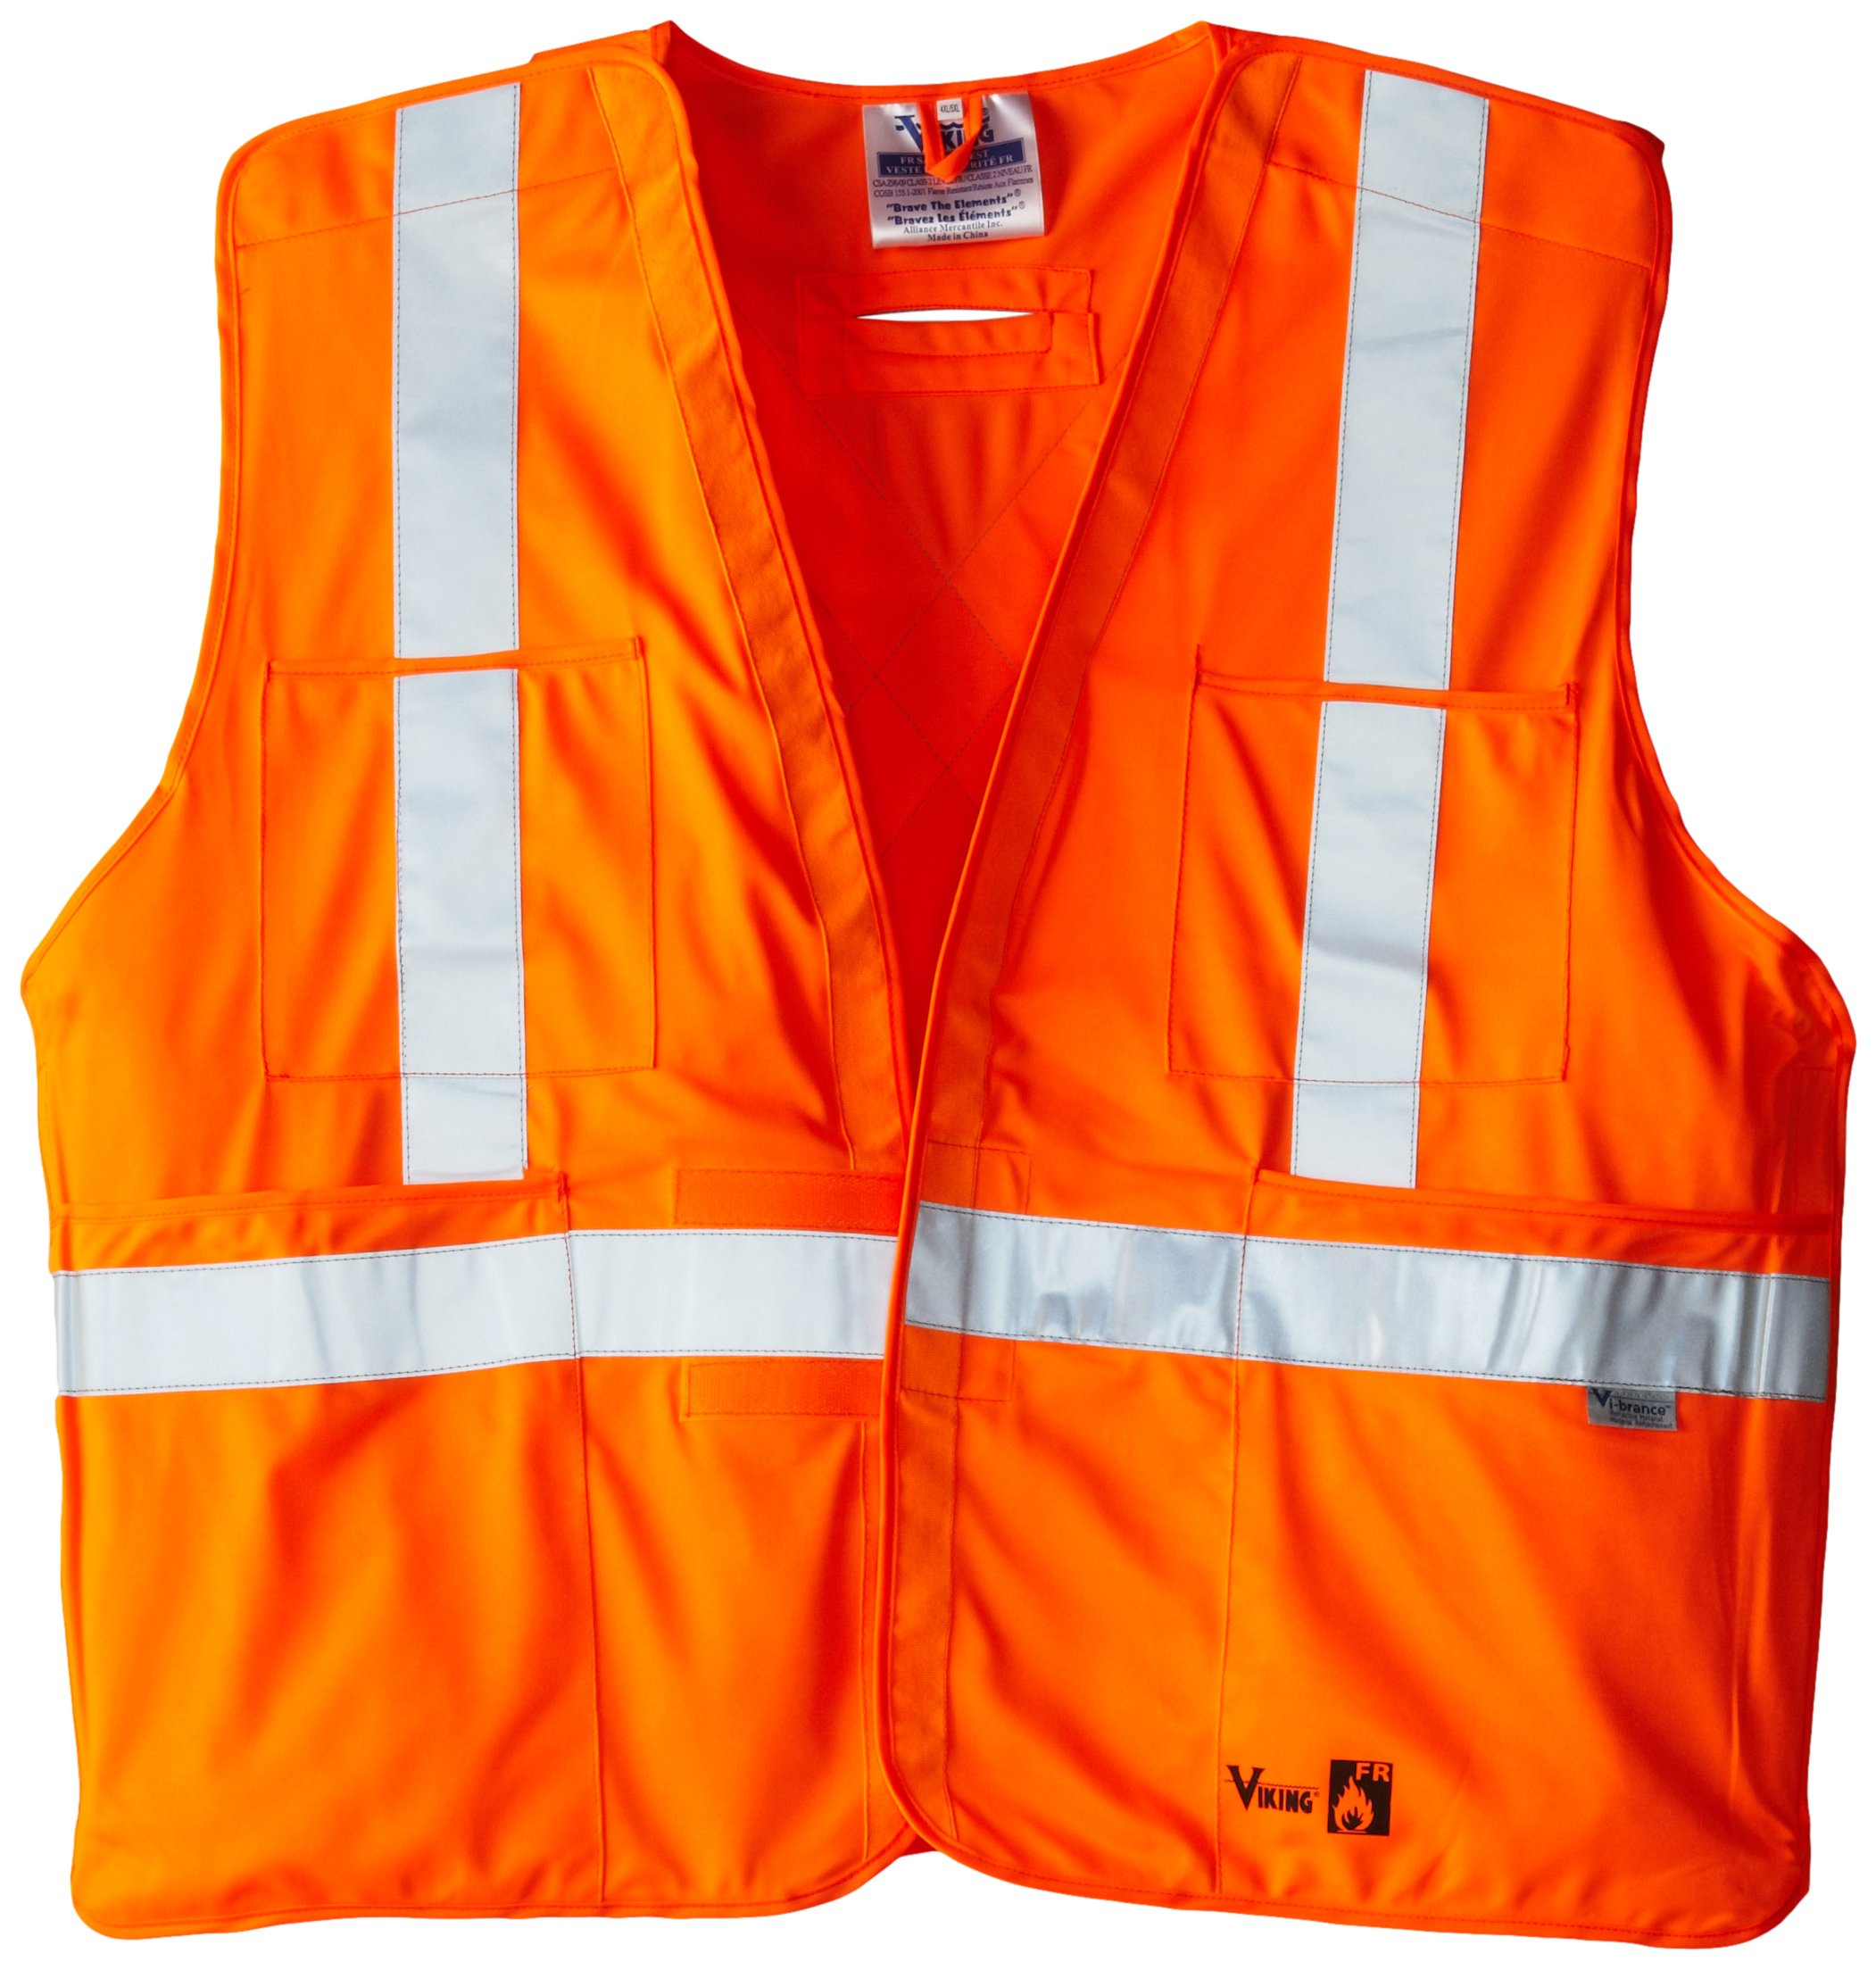 Viking FR Flame Resistant Reflective Vest, Orange, XX-Large/3X-Large